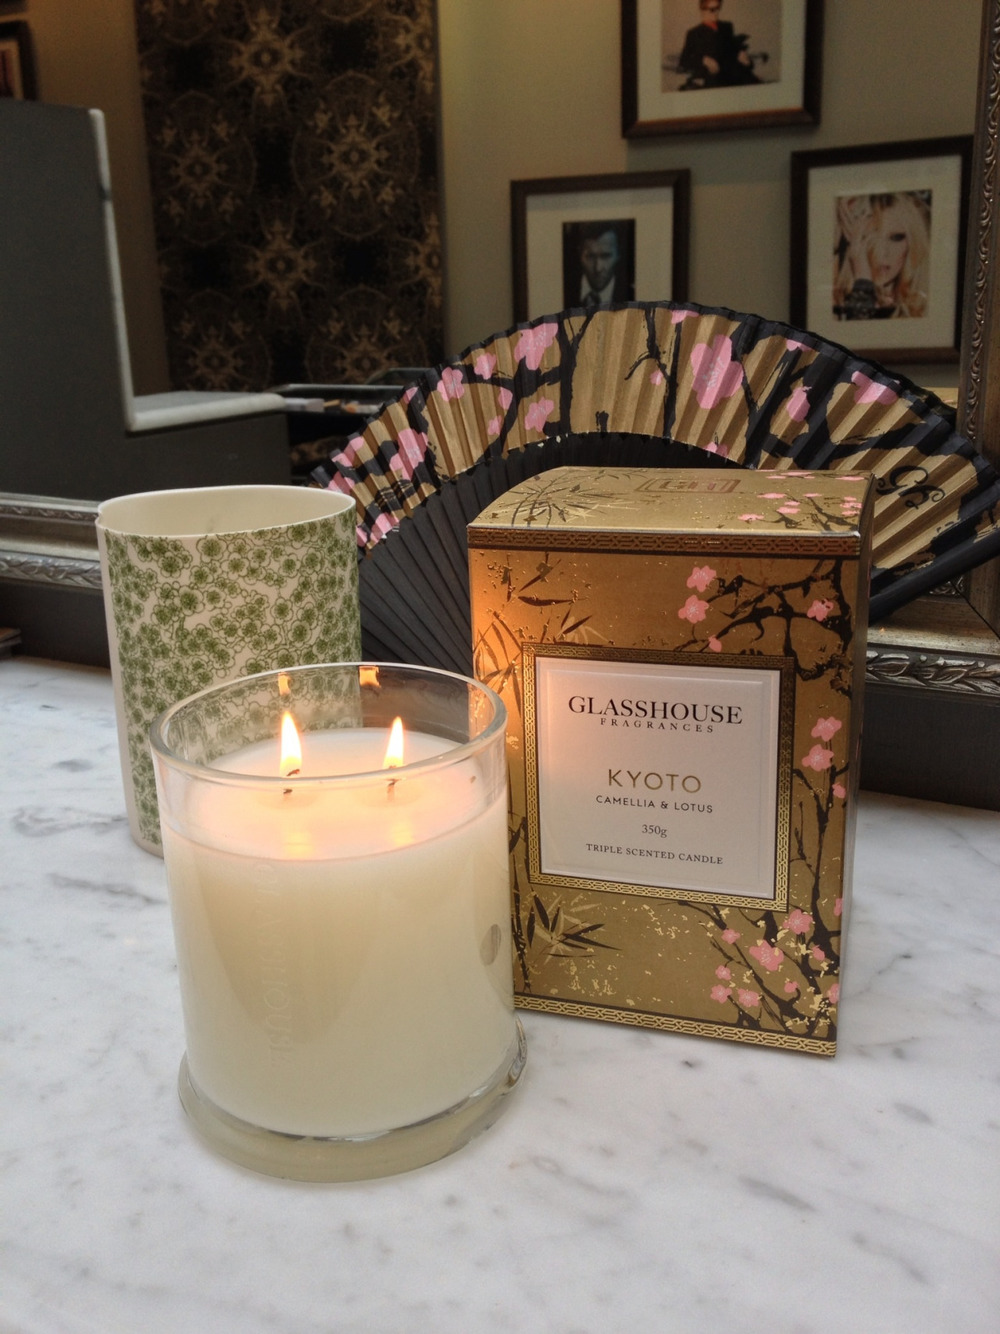 "We are loving the new limited edition 'Kyoto' candle from Glasshouse. ""Kyoto is the scent of an untold story of the forbidden lust and love between an emperor and a common girl. It's brought to life by Kyoto's sensual blend of Camellia, Lotus and Amber for a truly sacred experience"" - Nicole Eckels, Creative Director."